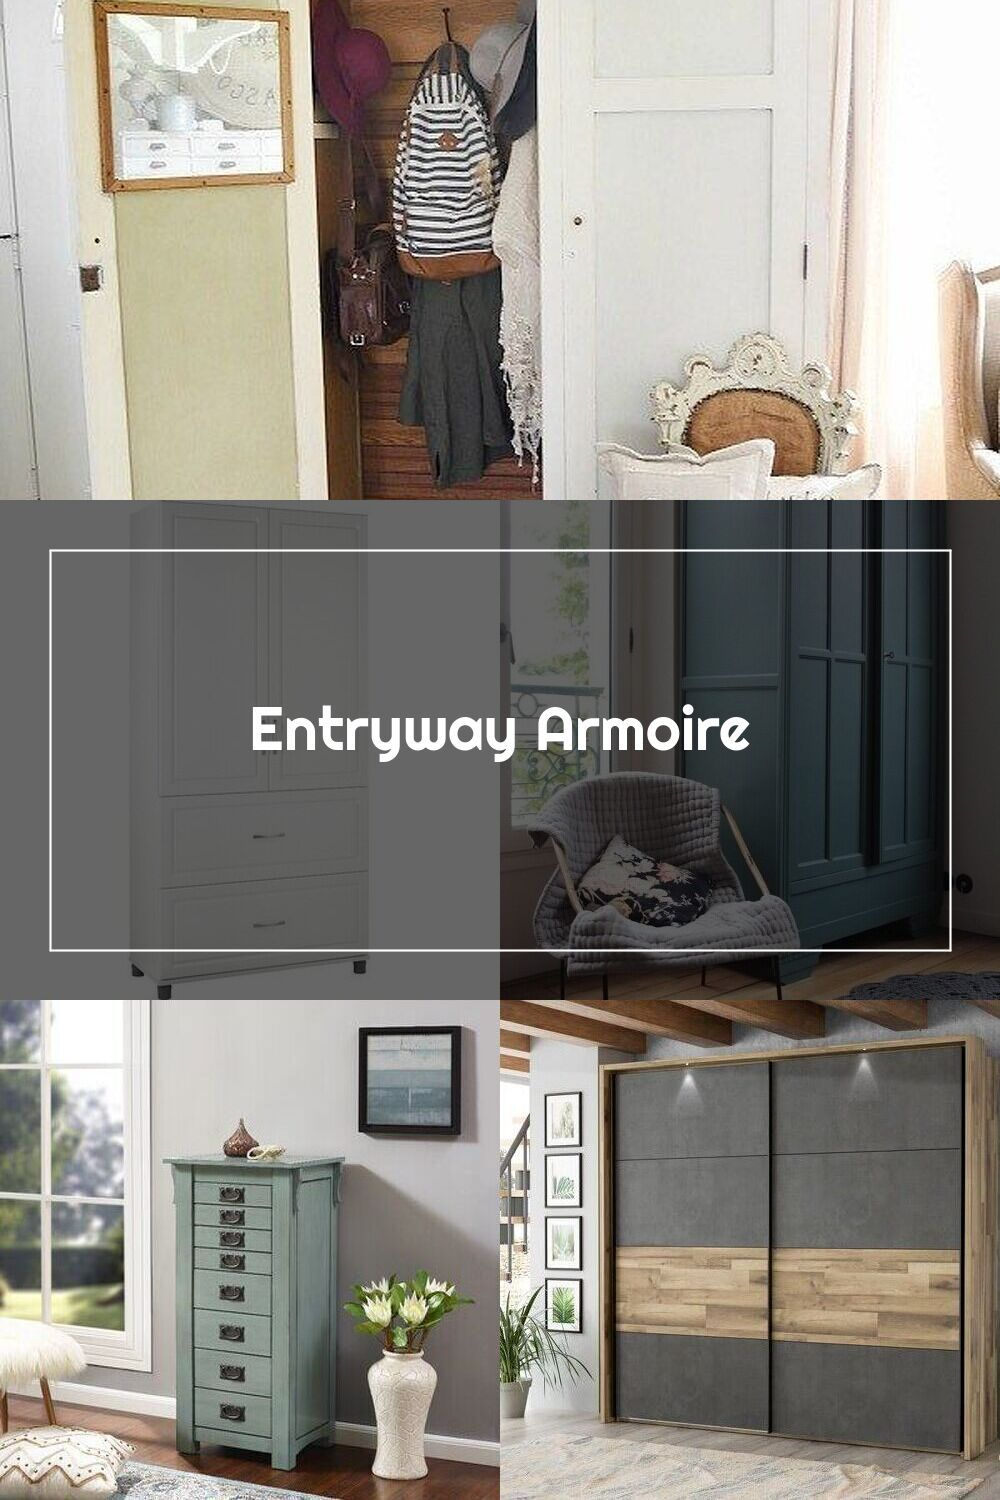 Entryway armoire - a great way to add storage to an ...